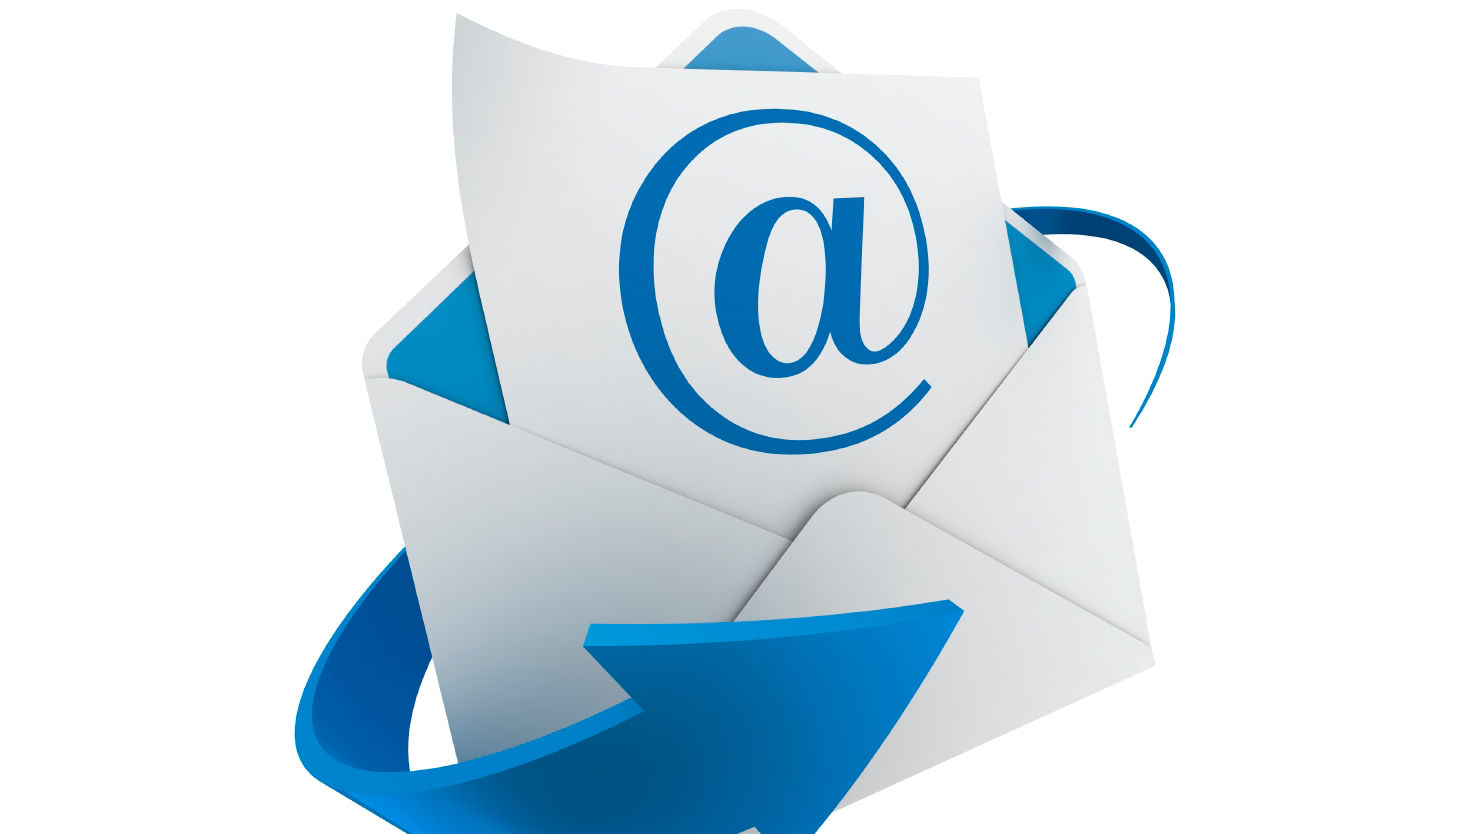 mercado-ecommerce-email-marketing-5-dicas-importantes